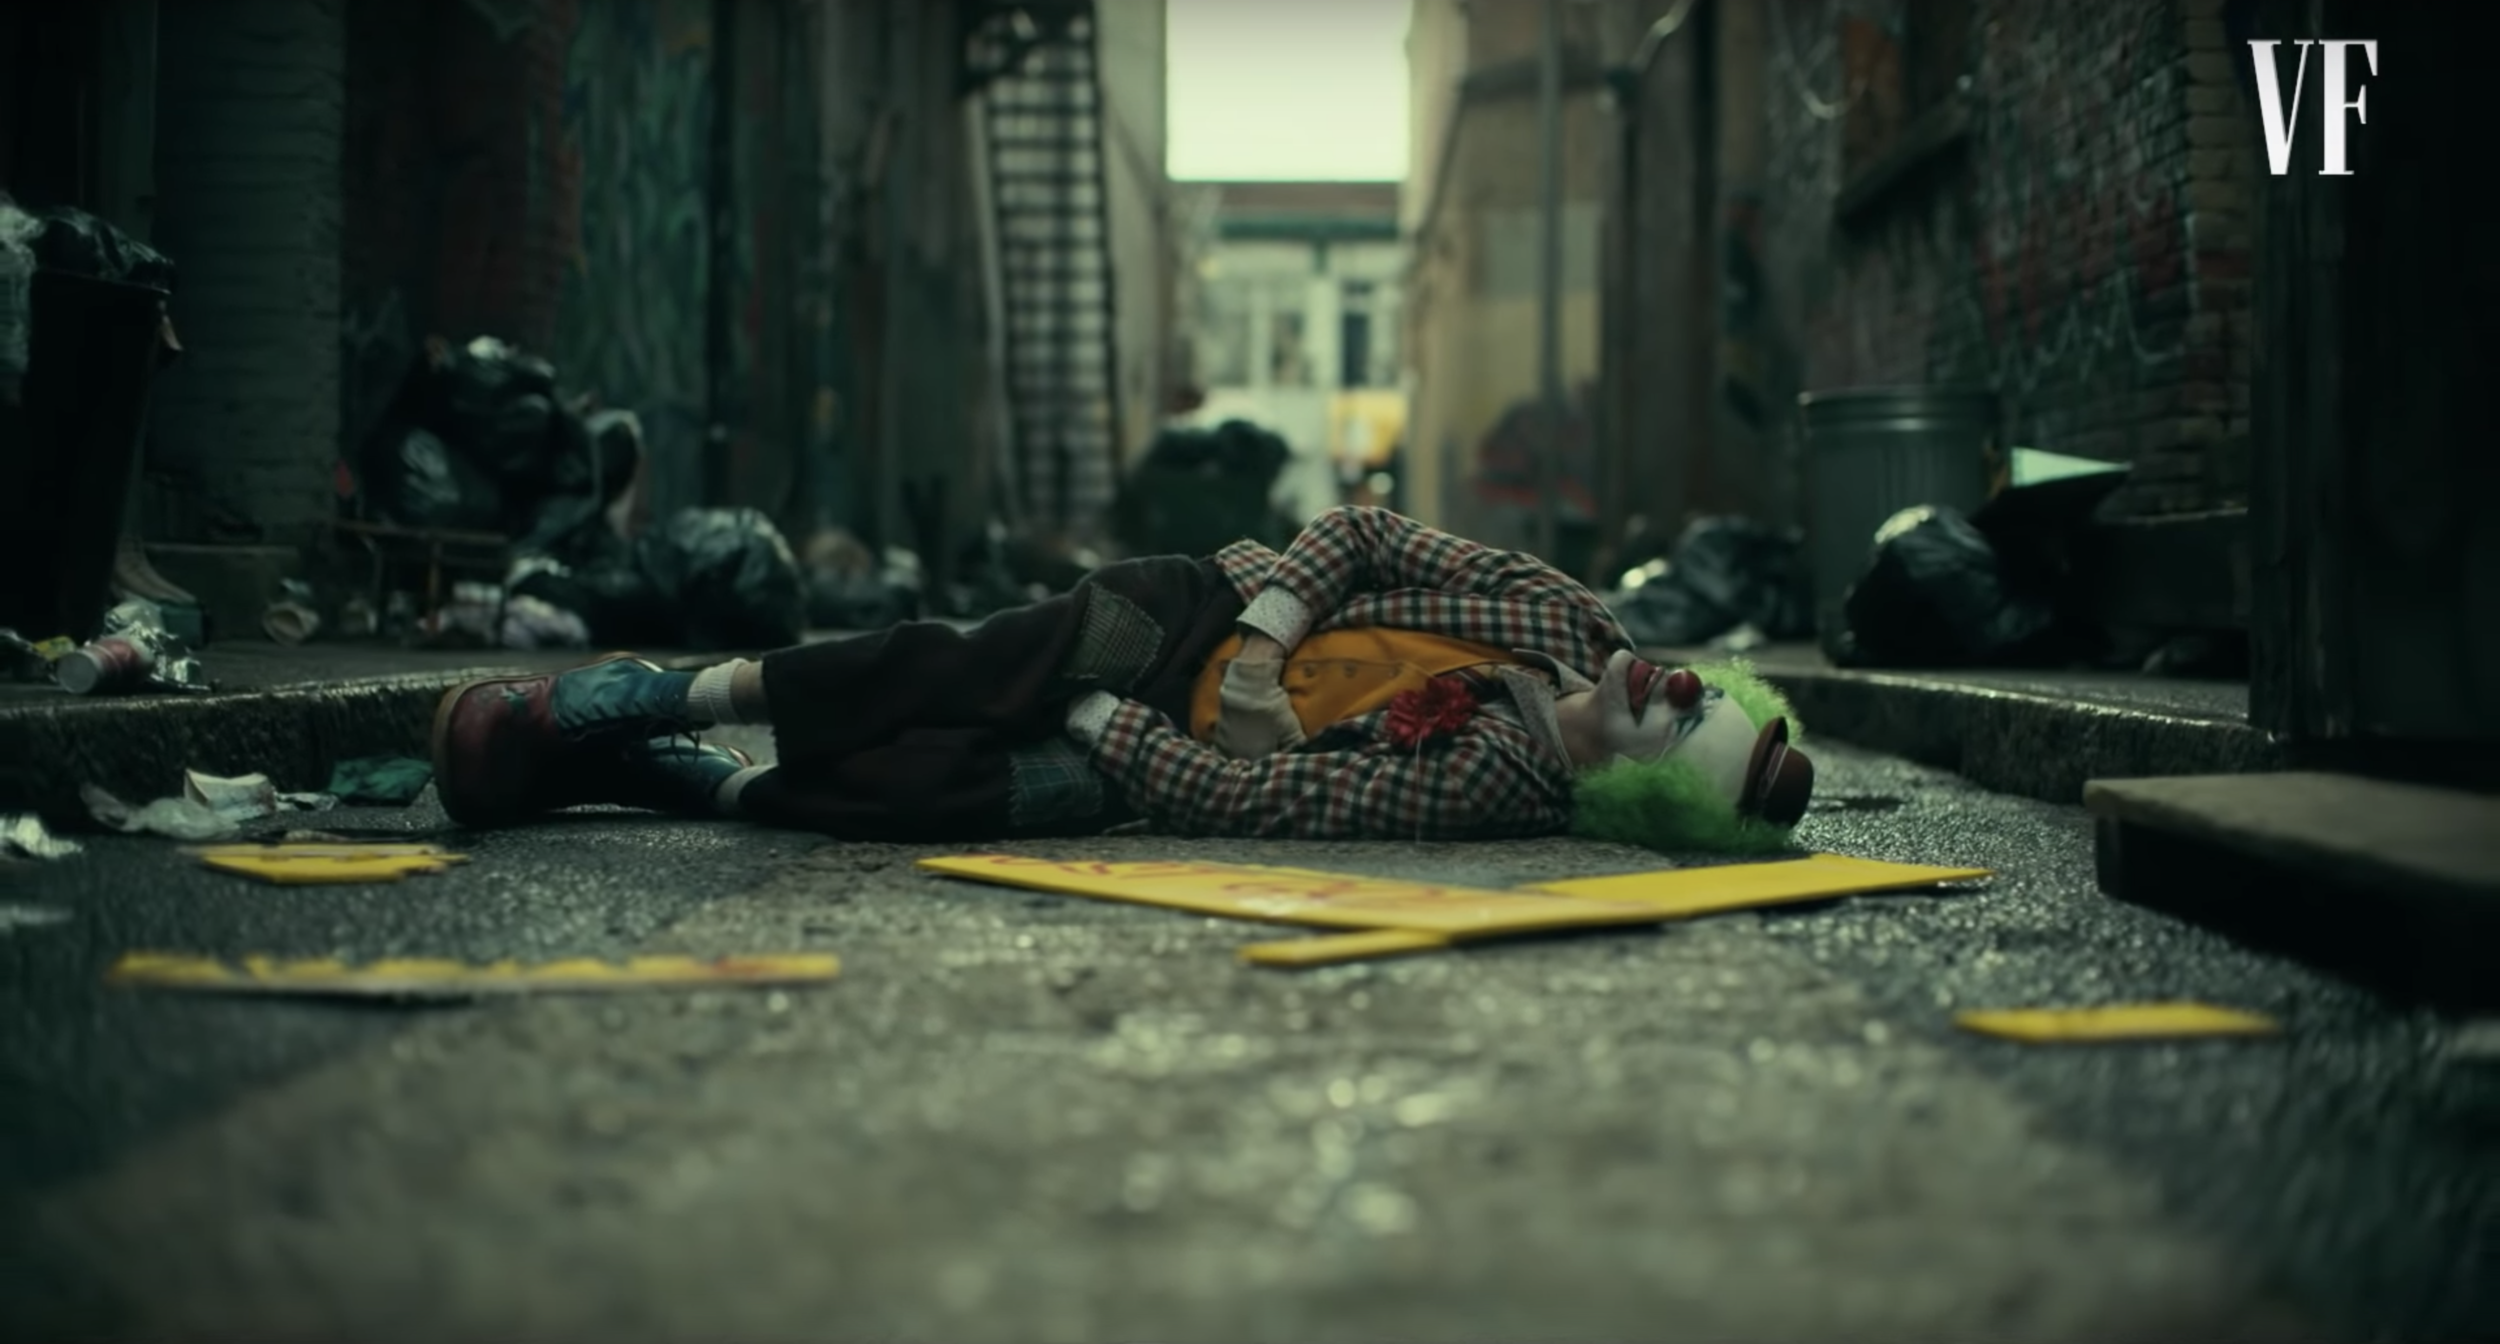 Joker (2019) beaten up and lying in an alley